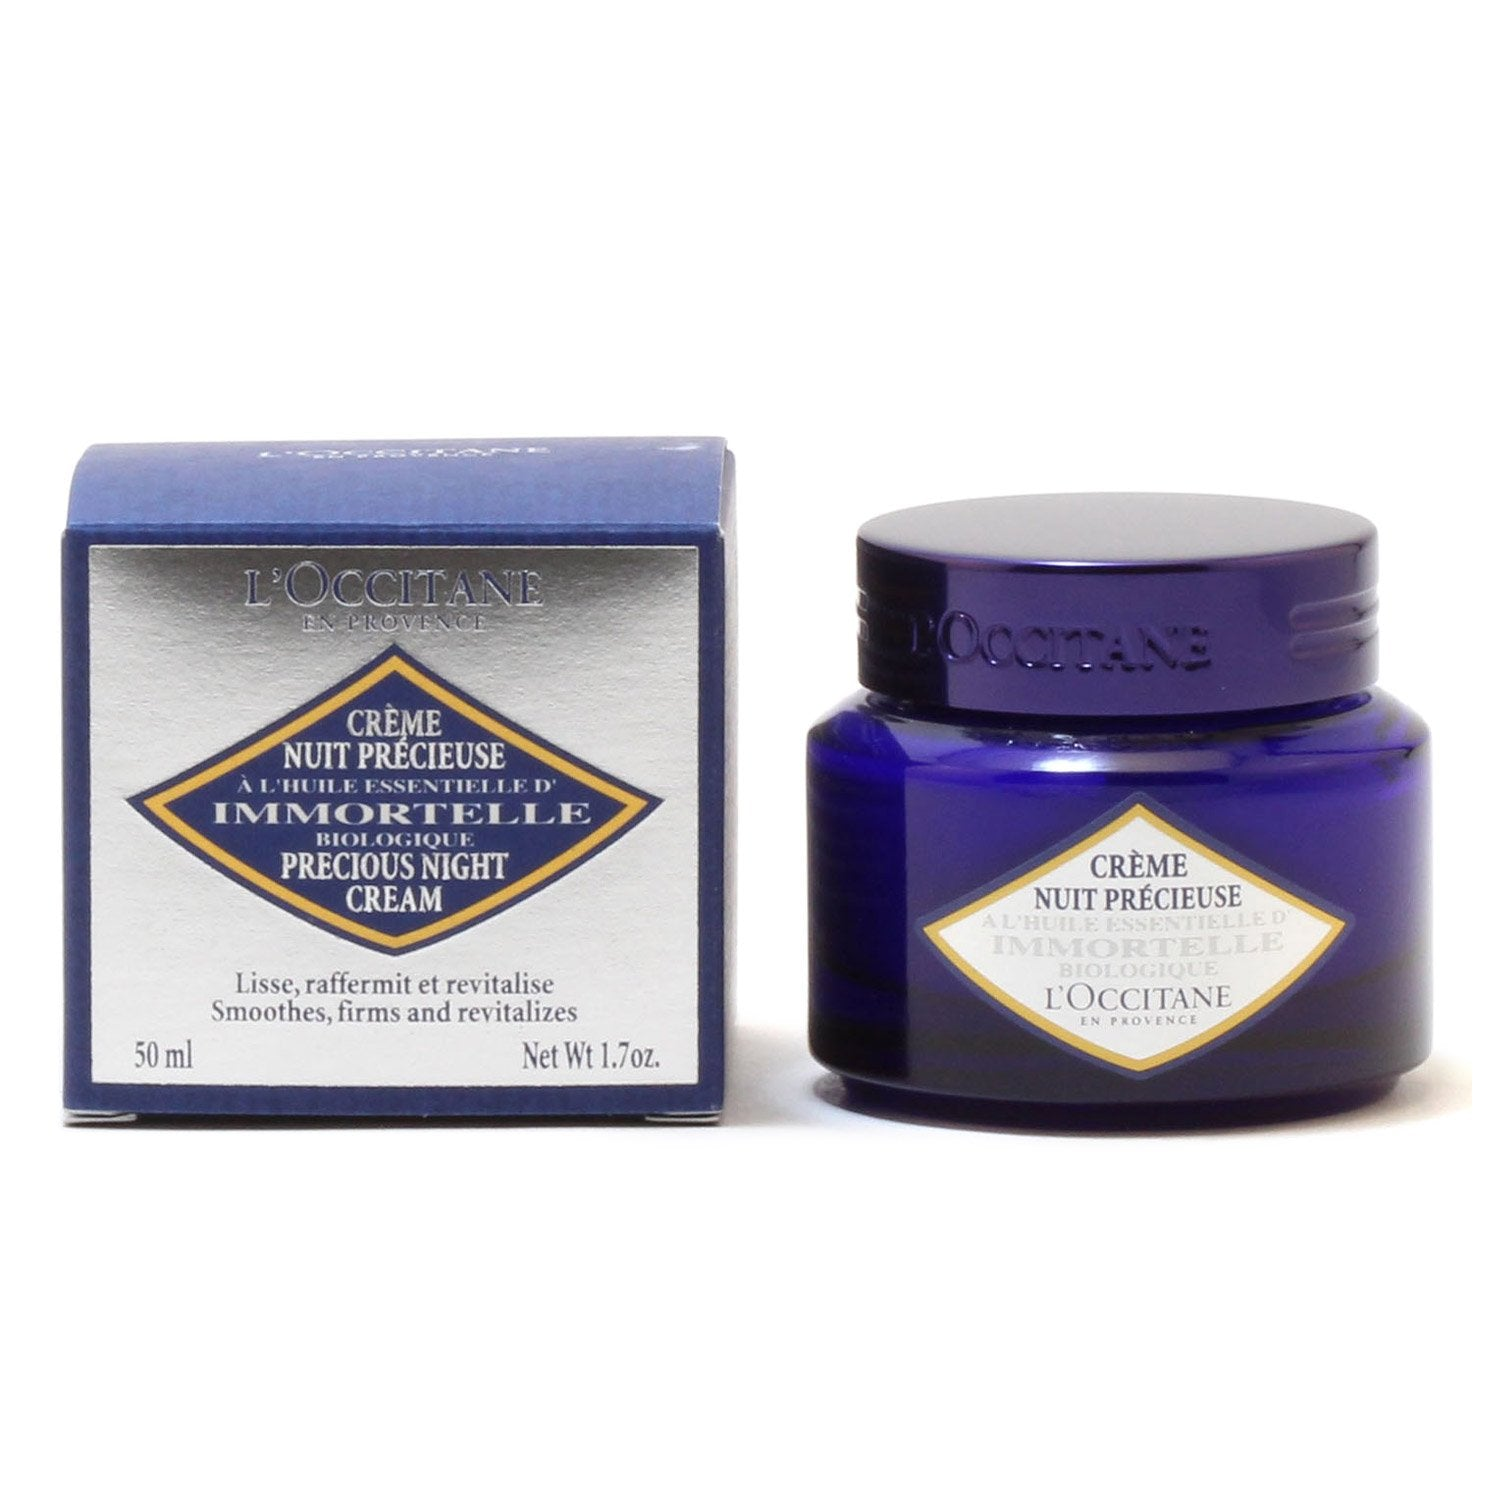 Bath And Body - L'OCCITANE IMMORTELLE PRECIOUS NIGHT CREAM, 1.7 OZ